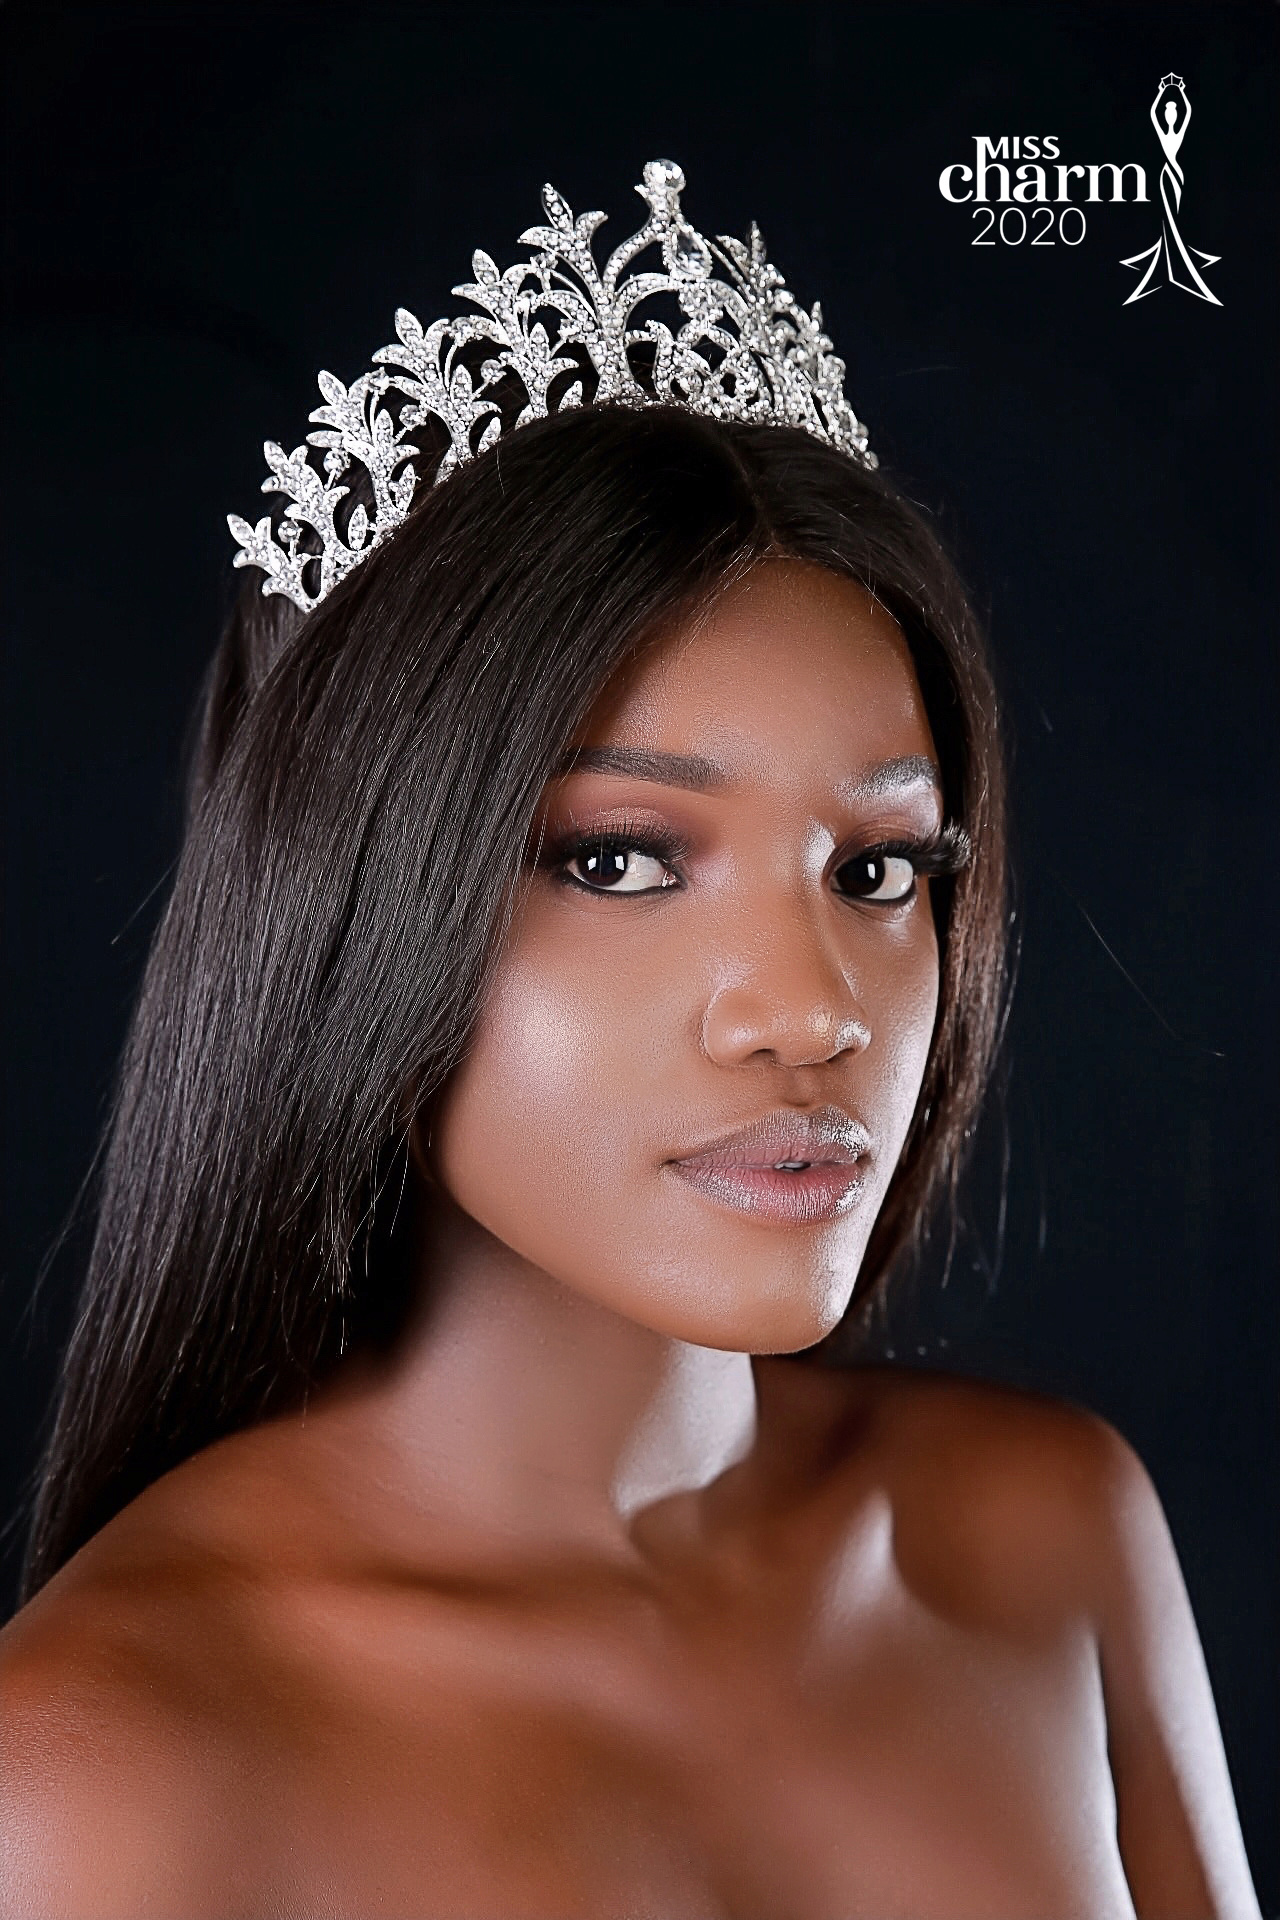 MISS CHARM INTERNATIONAL 2020 Namibi12